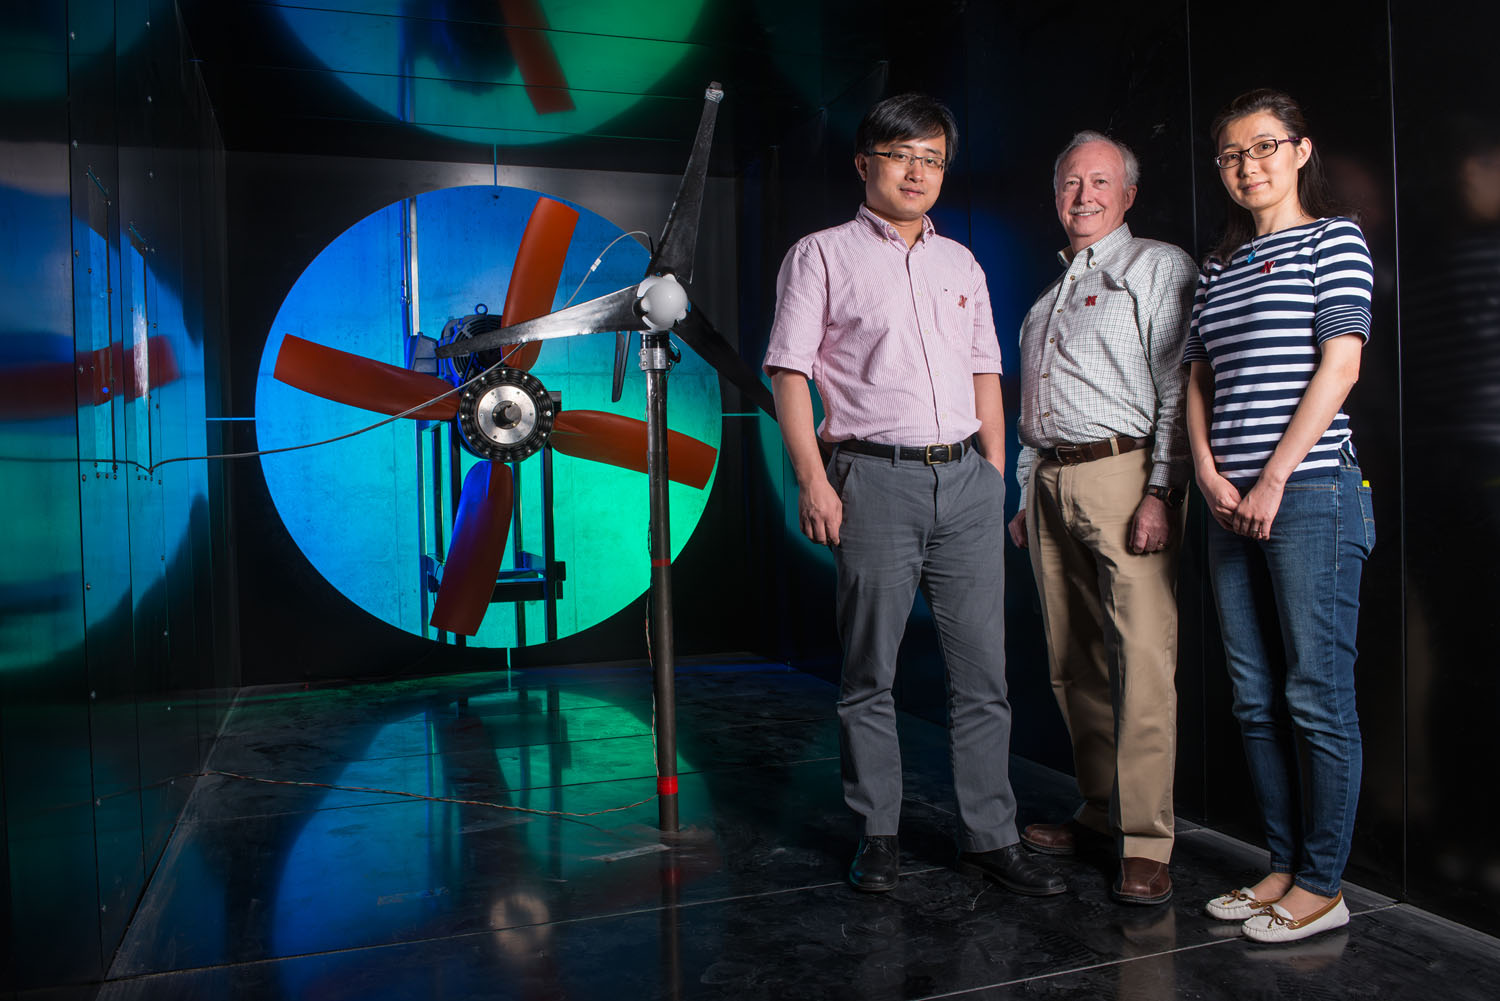 Electrical engineers Wei Qiao, Jerry Hudgins and Liyan Qu